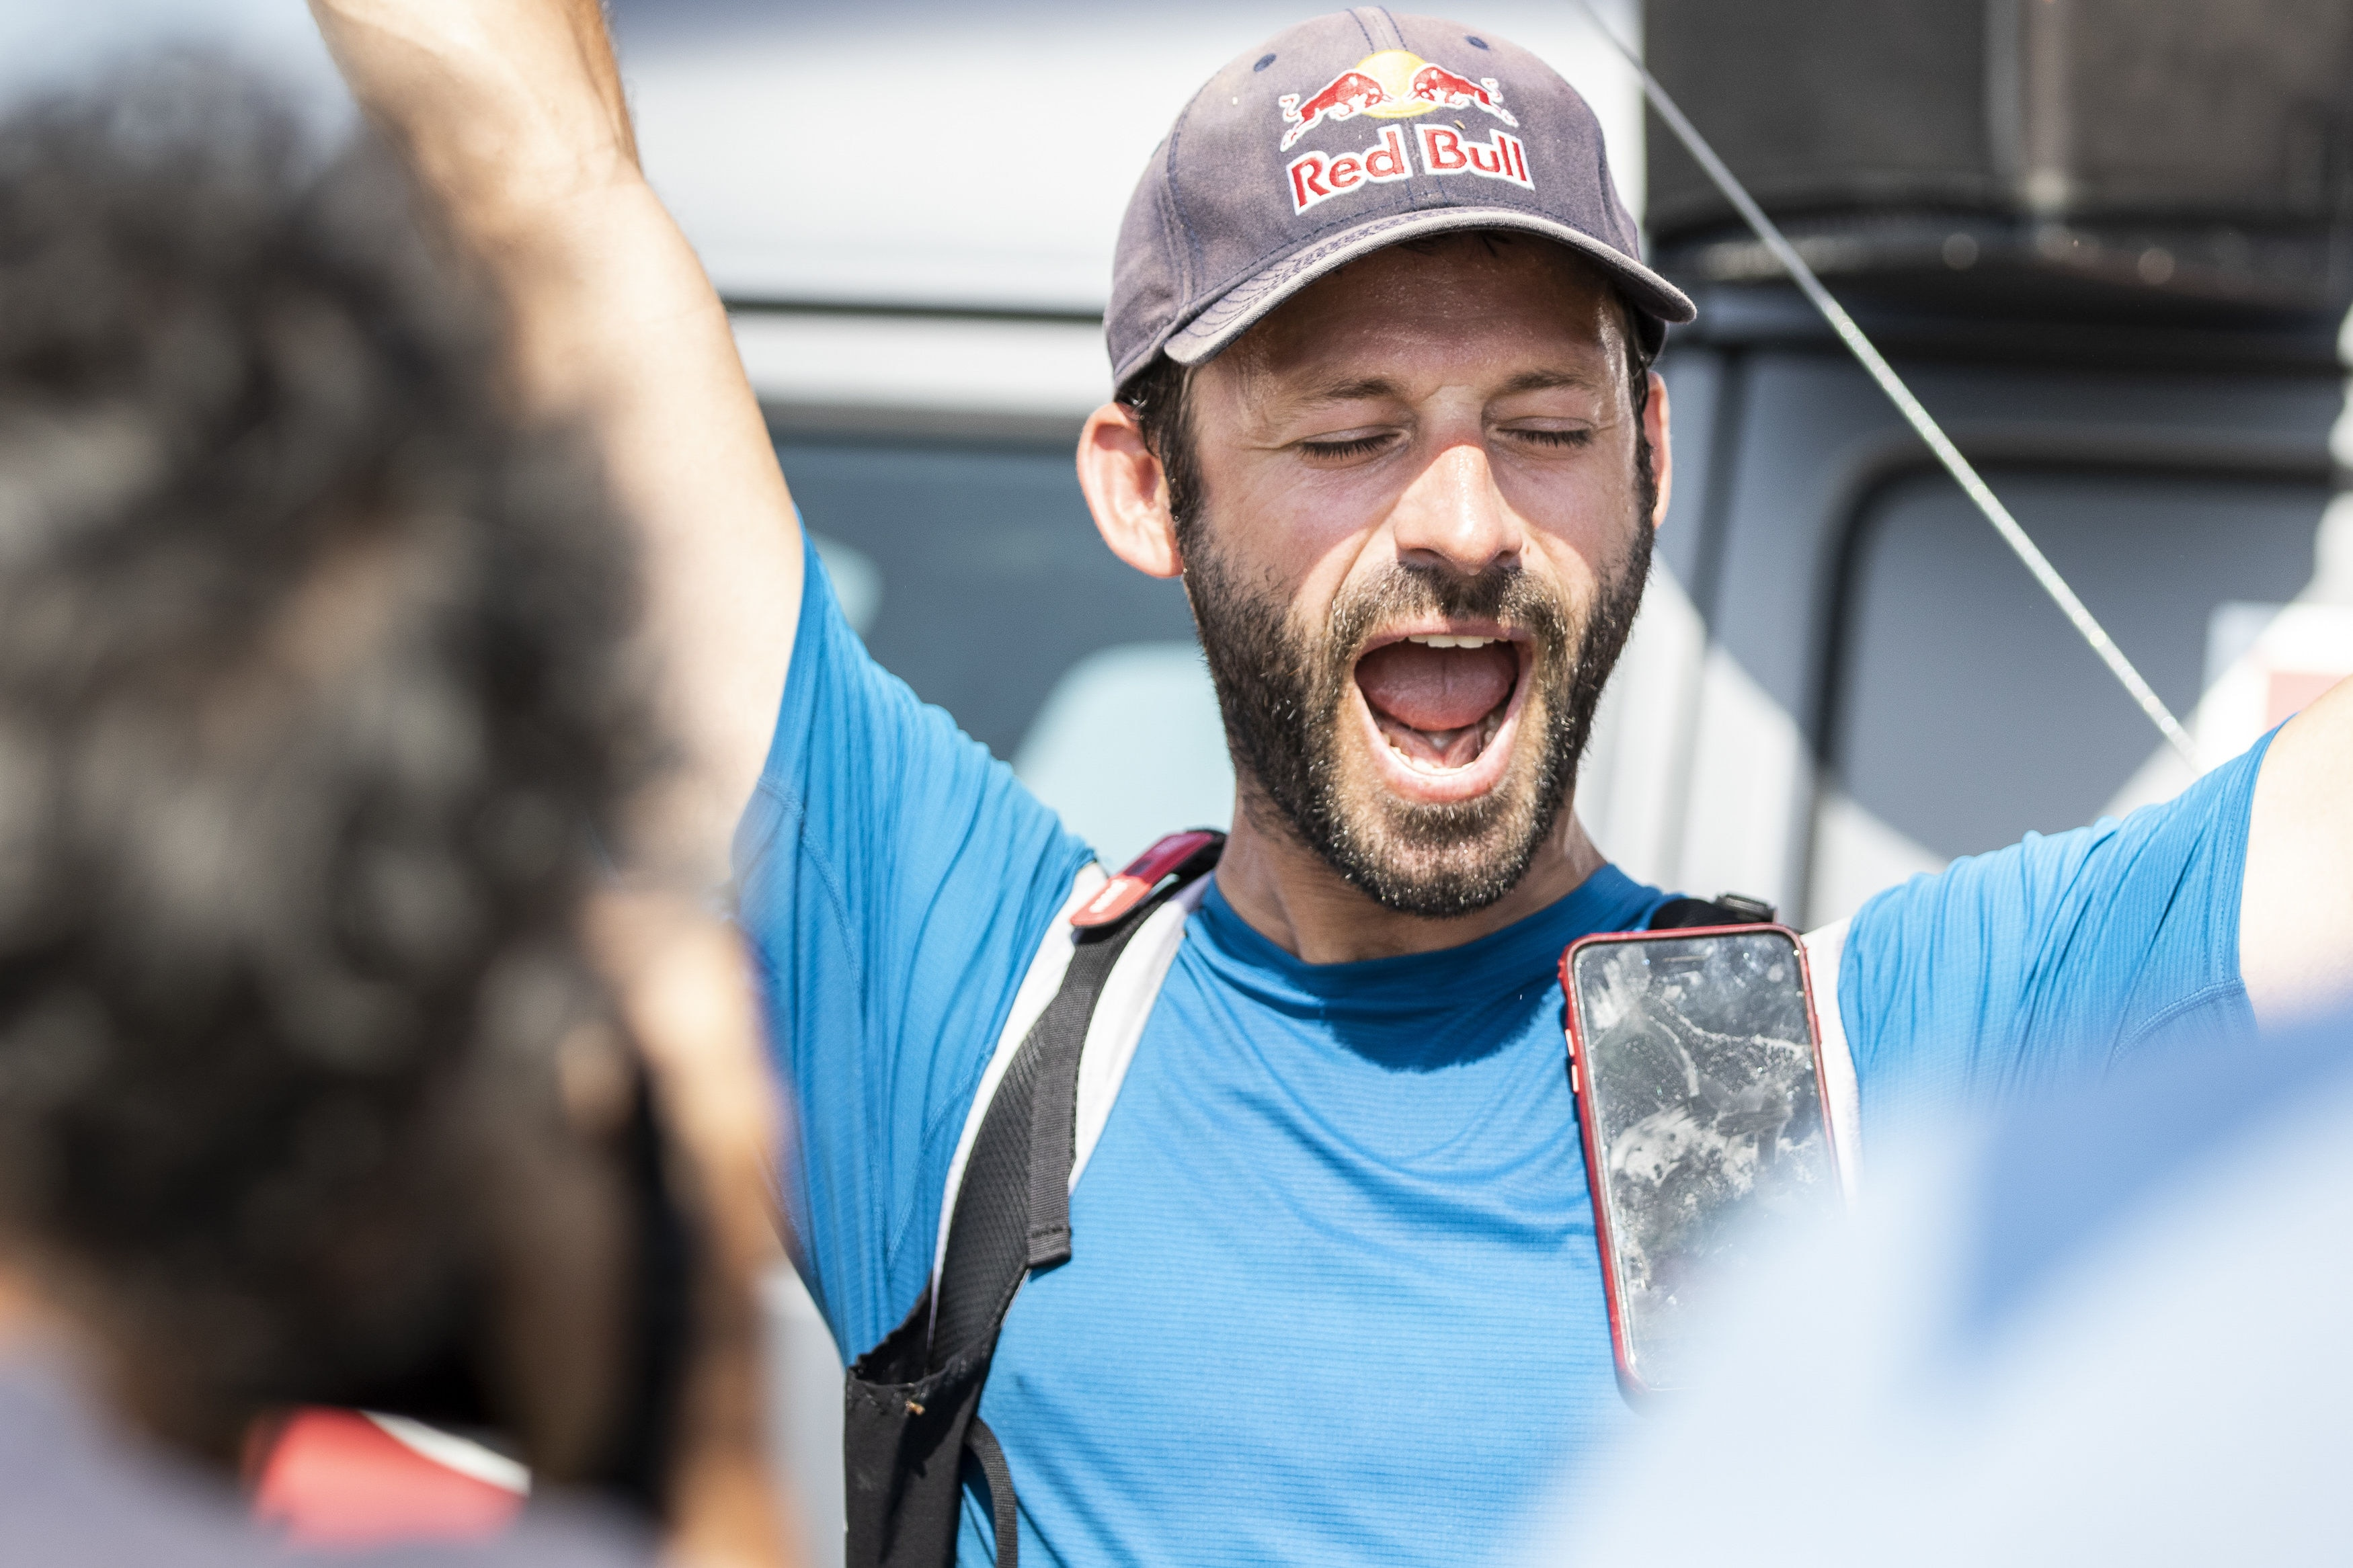 Tom De Dorlodot (BEL) celebrates during the Red Bull X-Alps in Peille, France on June 27, 2019